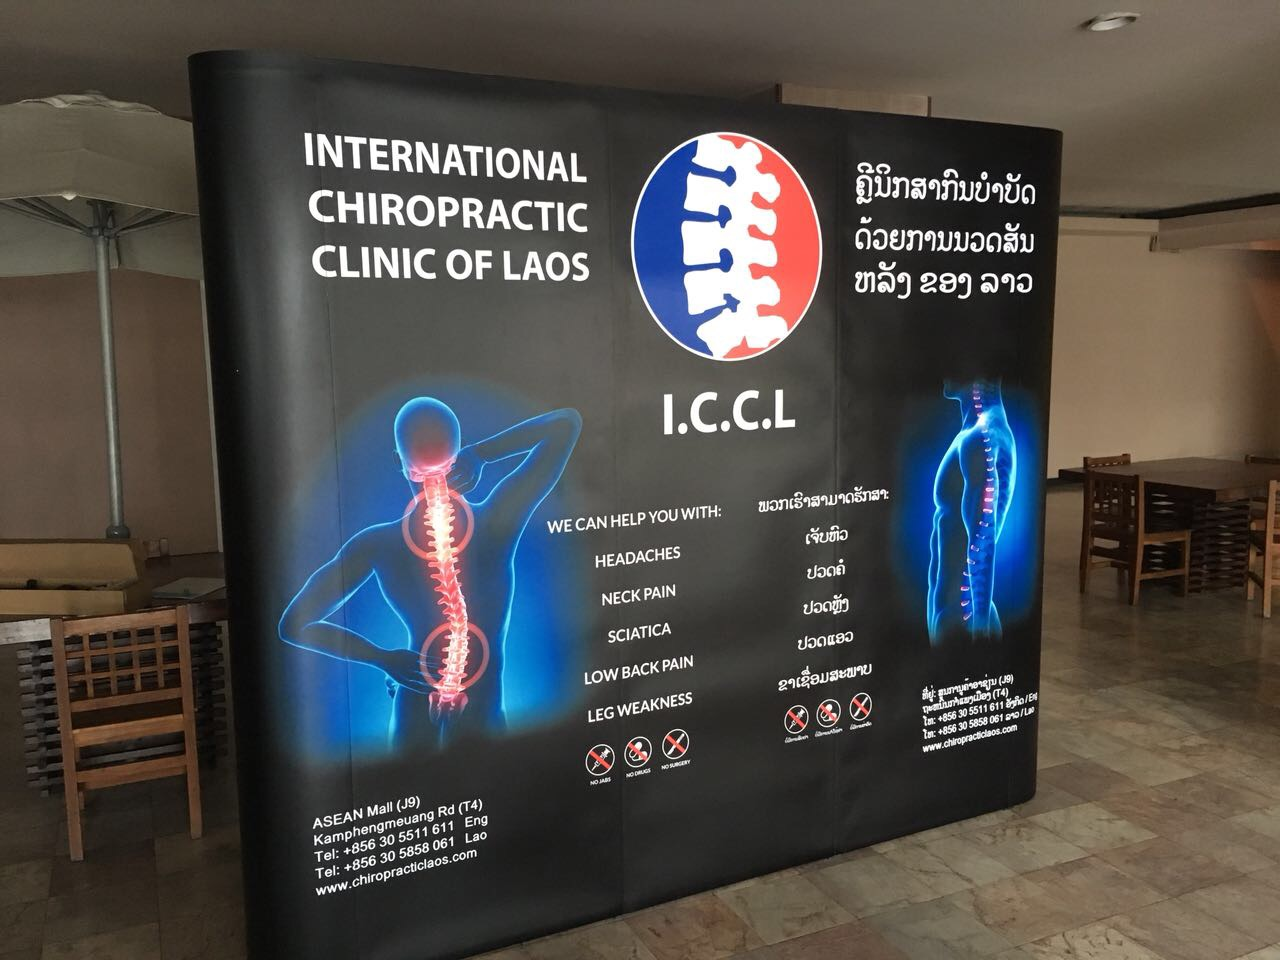 3x3 popup display for medical service event © Pixel Planet Design